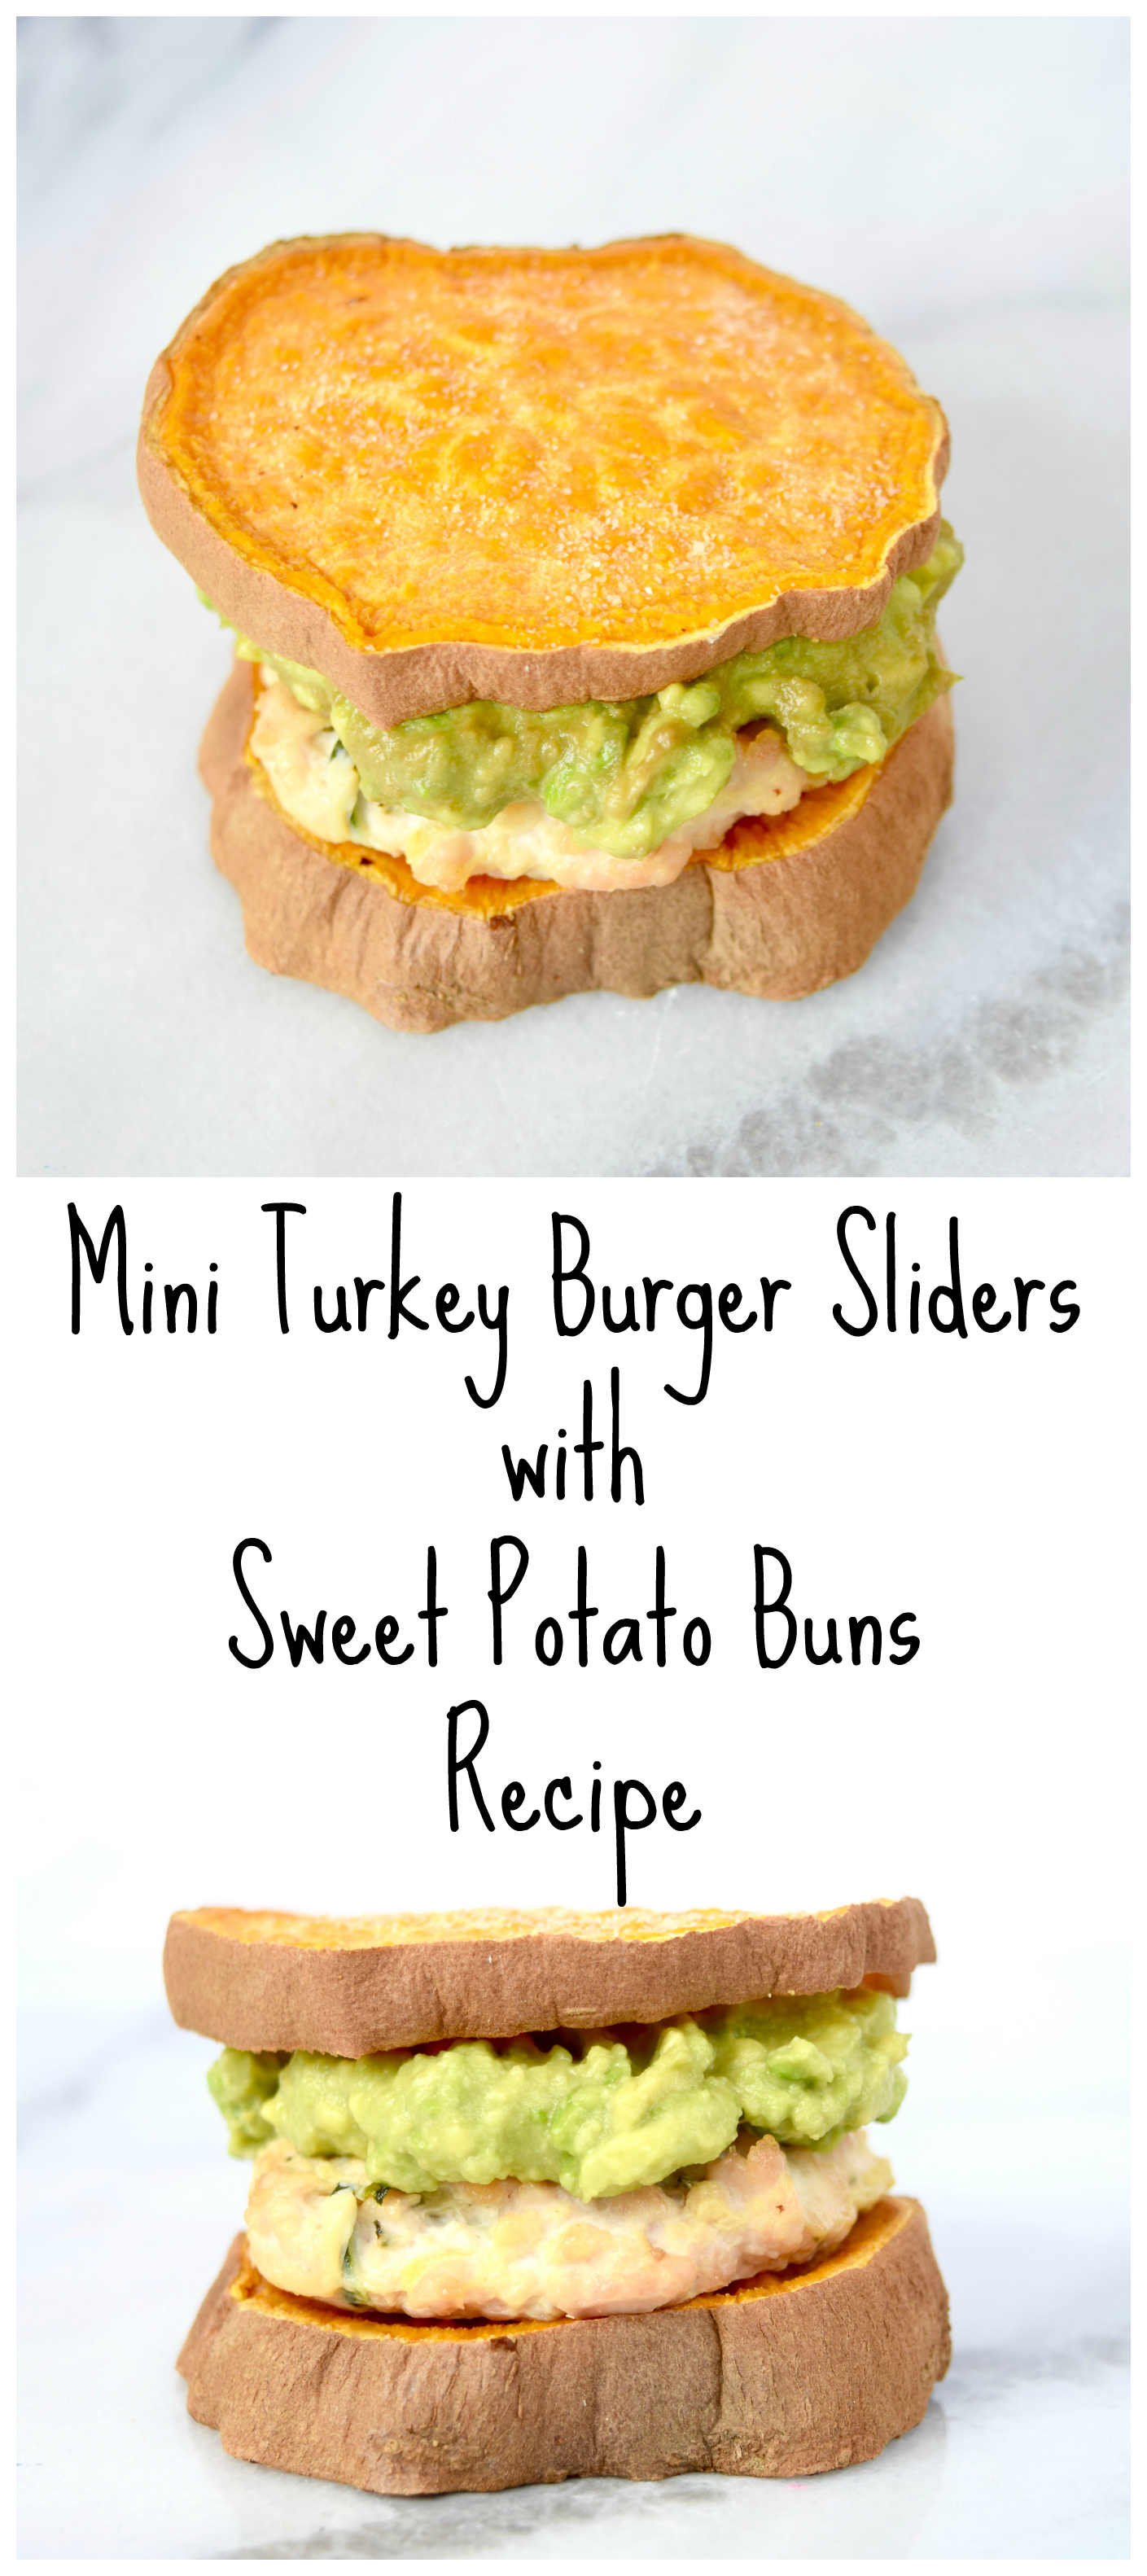 Mini Turkey Burger Sliders With Sweet Potato Buns Recipe